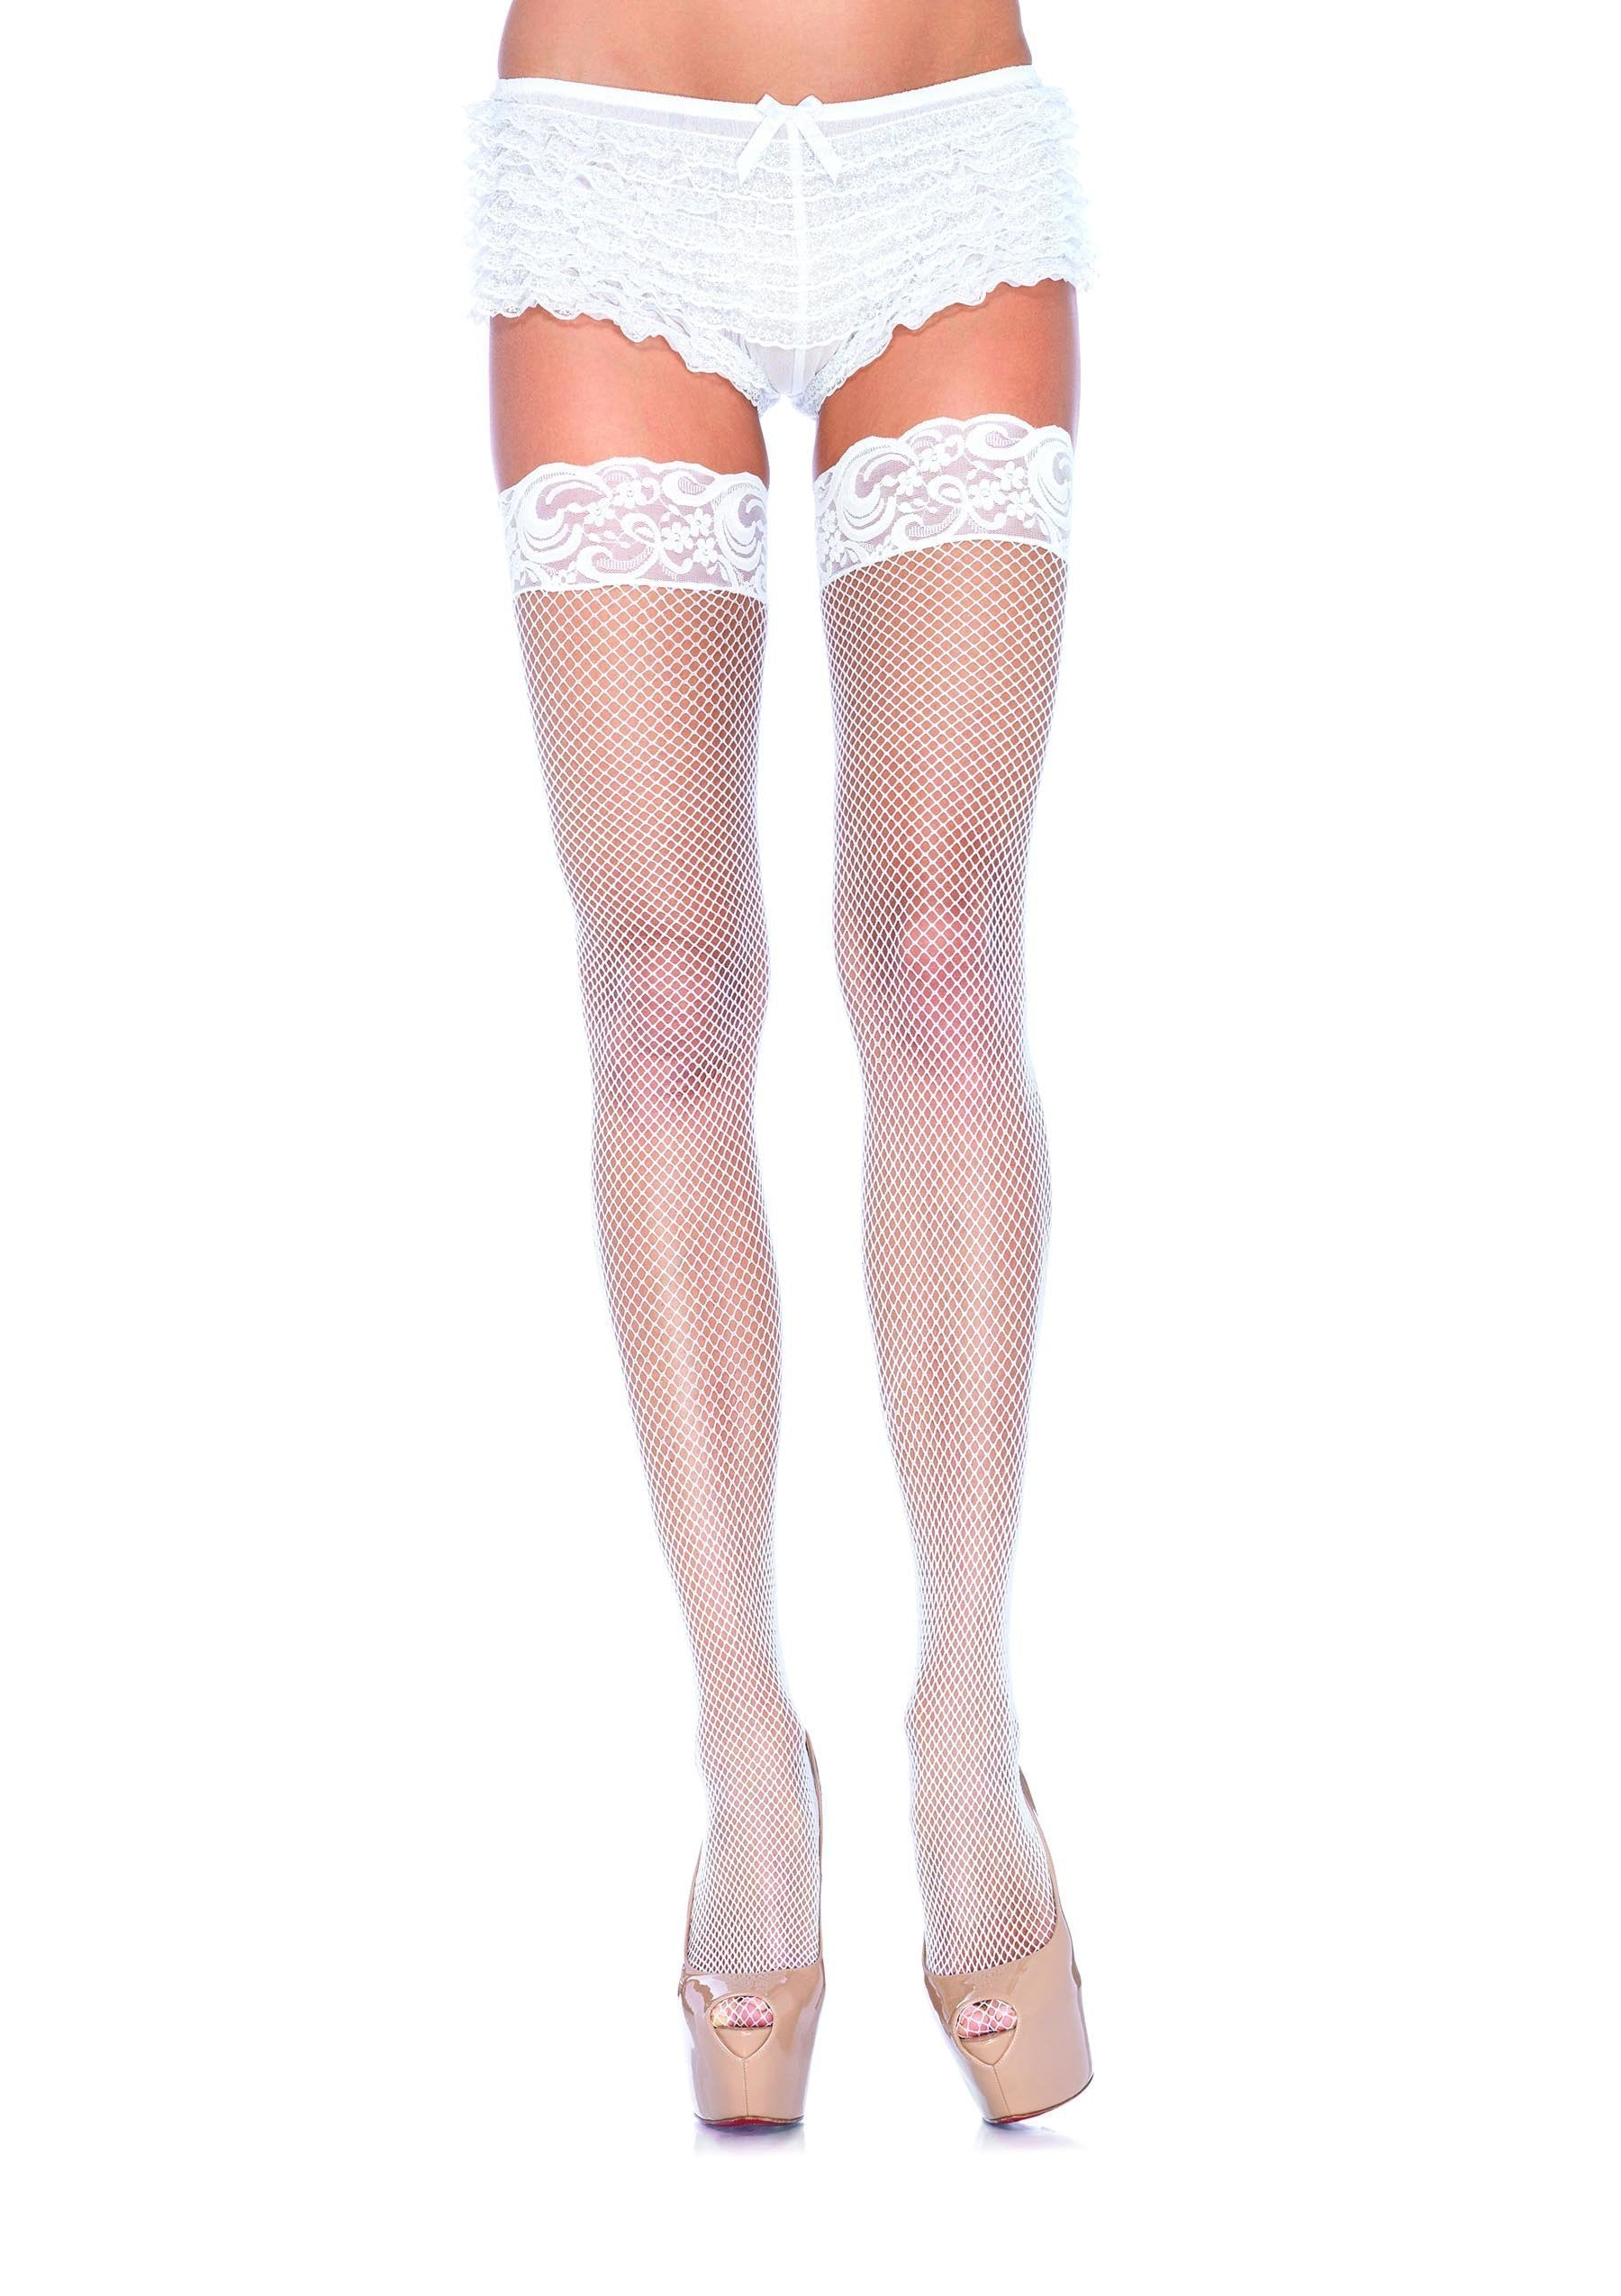 ac645c05eab Adult Thigh Highs